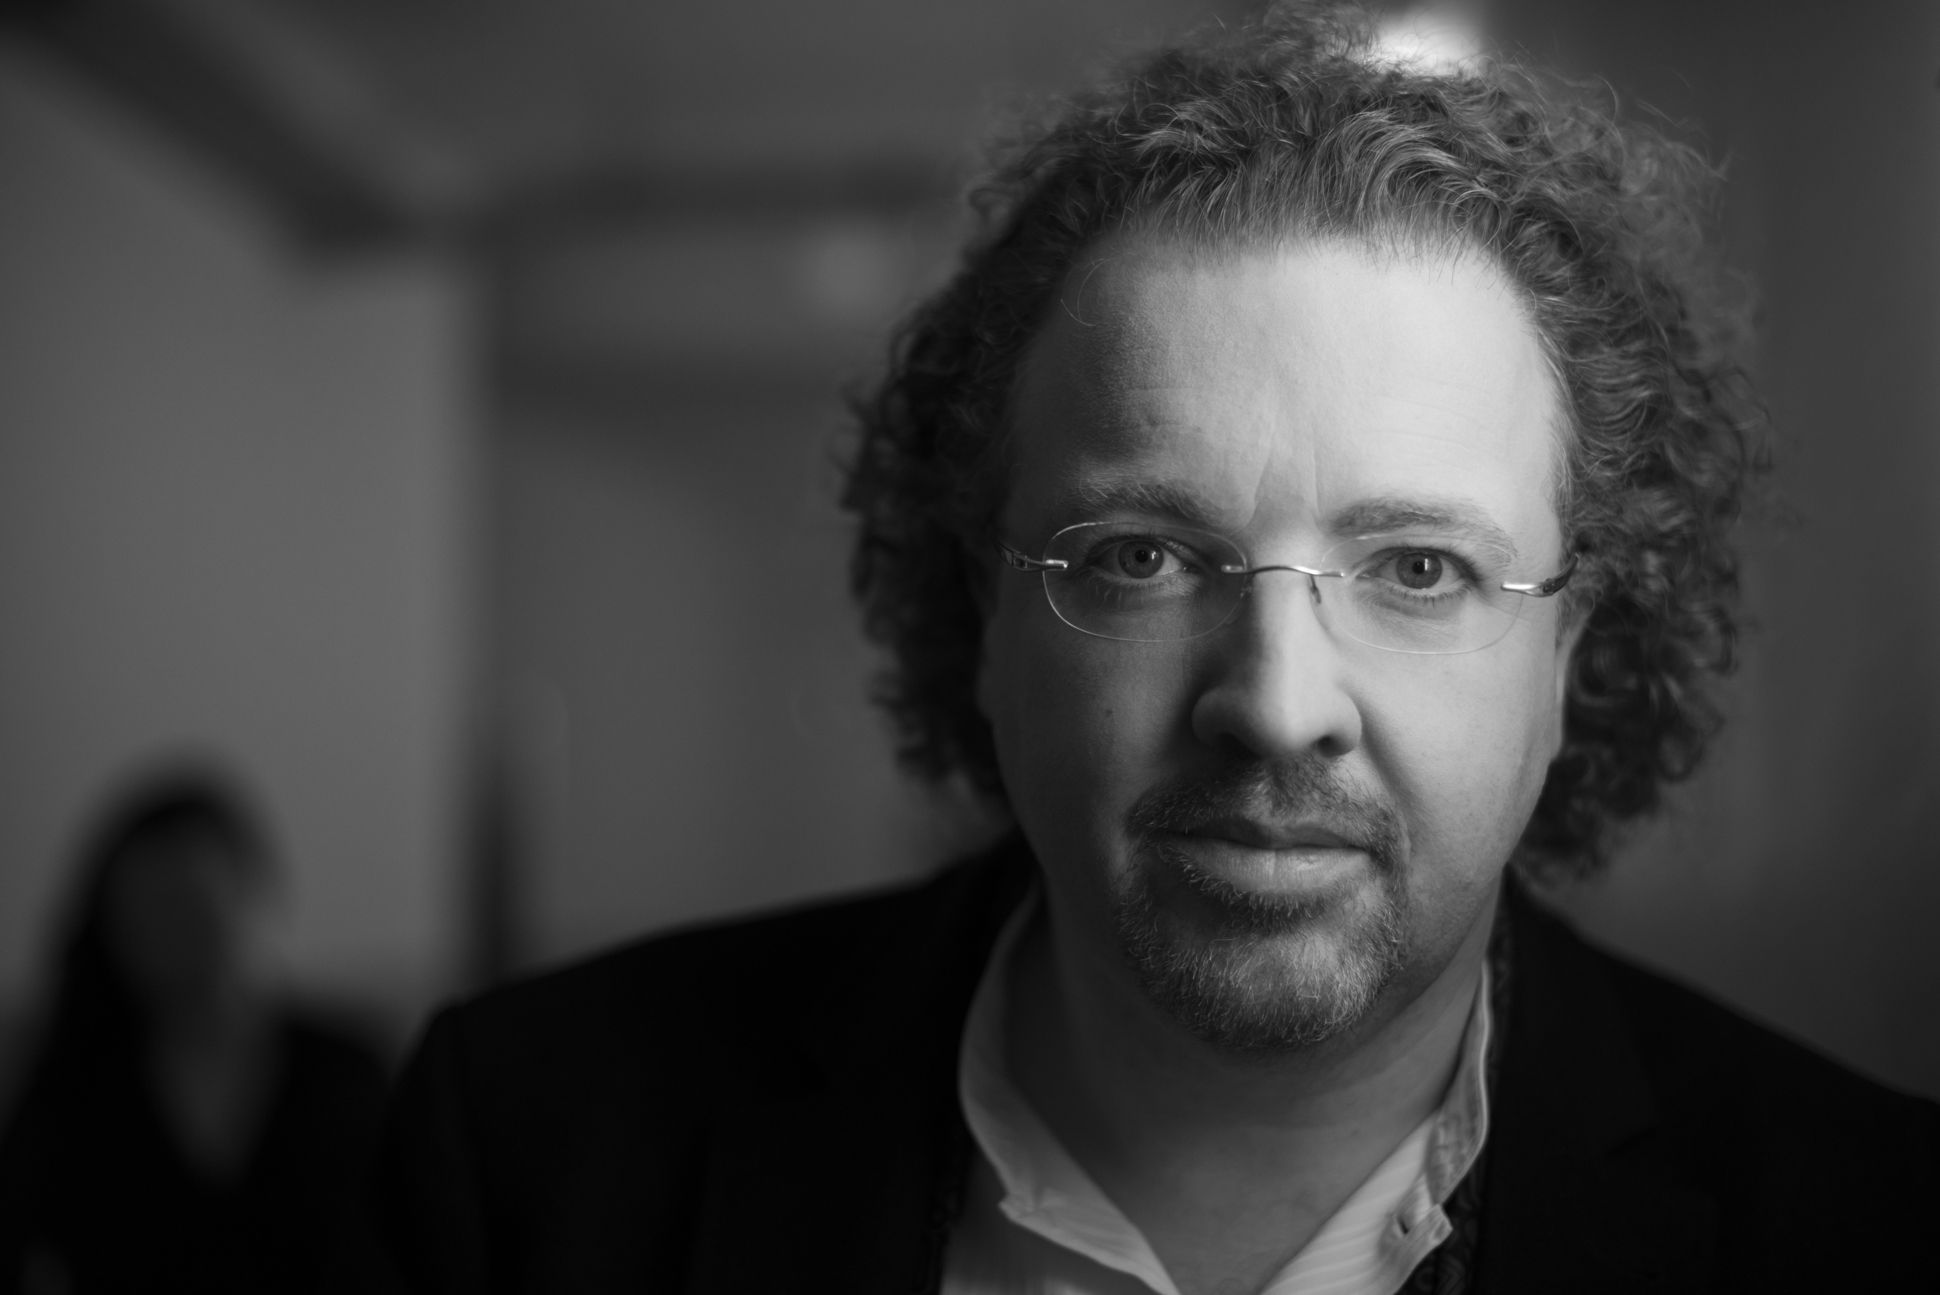 Denève named Chief Conductor of Brussels Philharmonic from 2015, Director Cffor